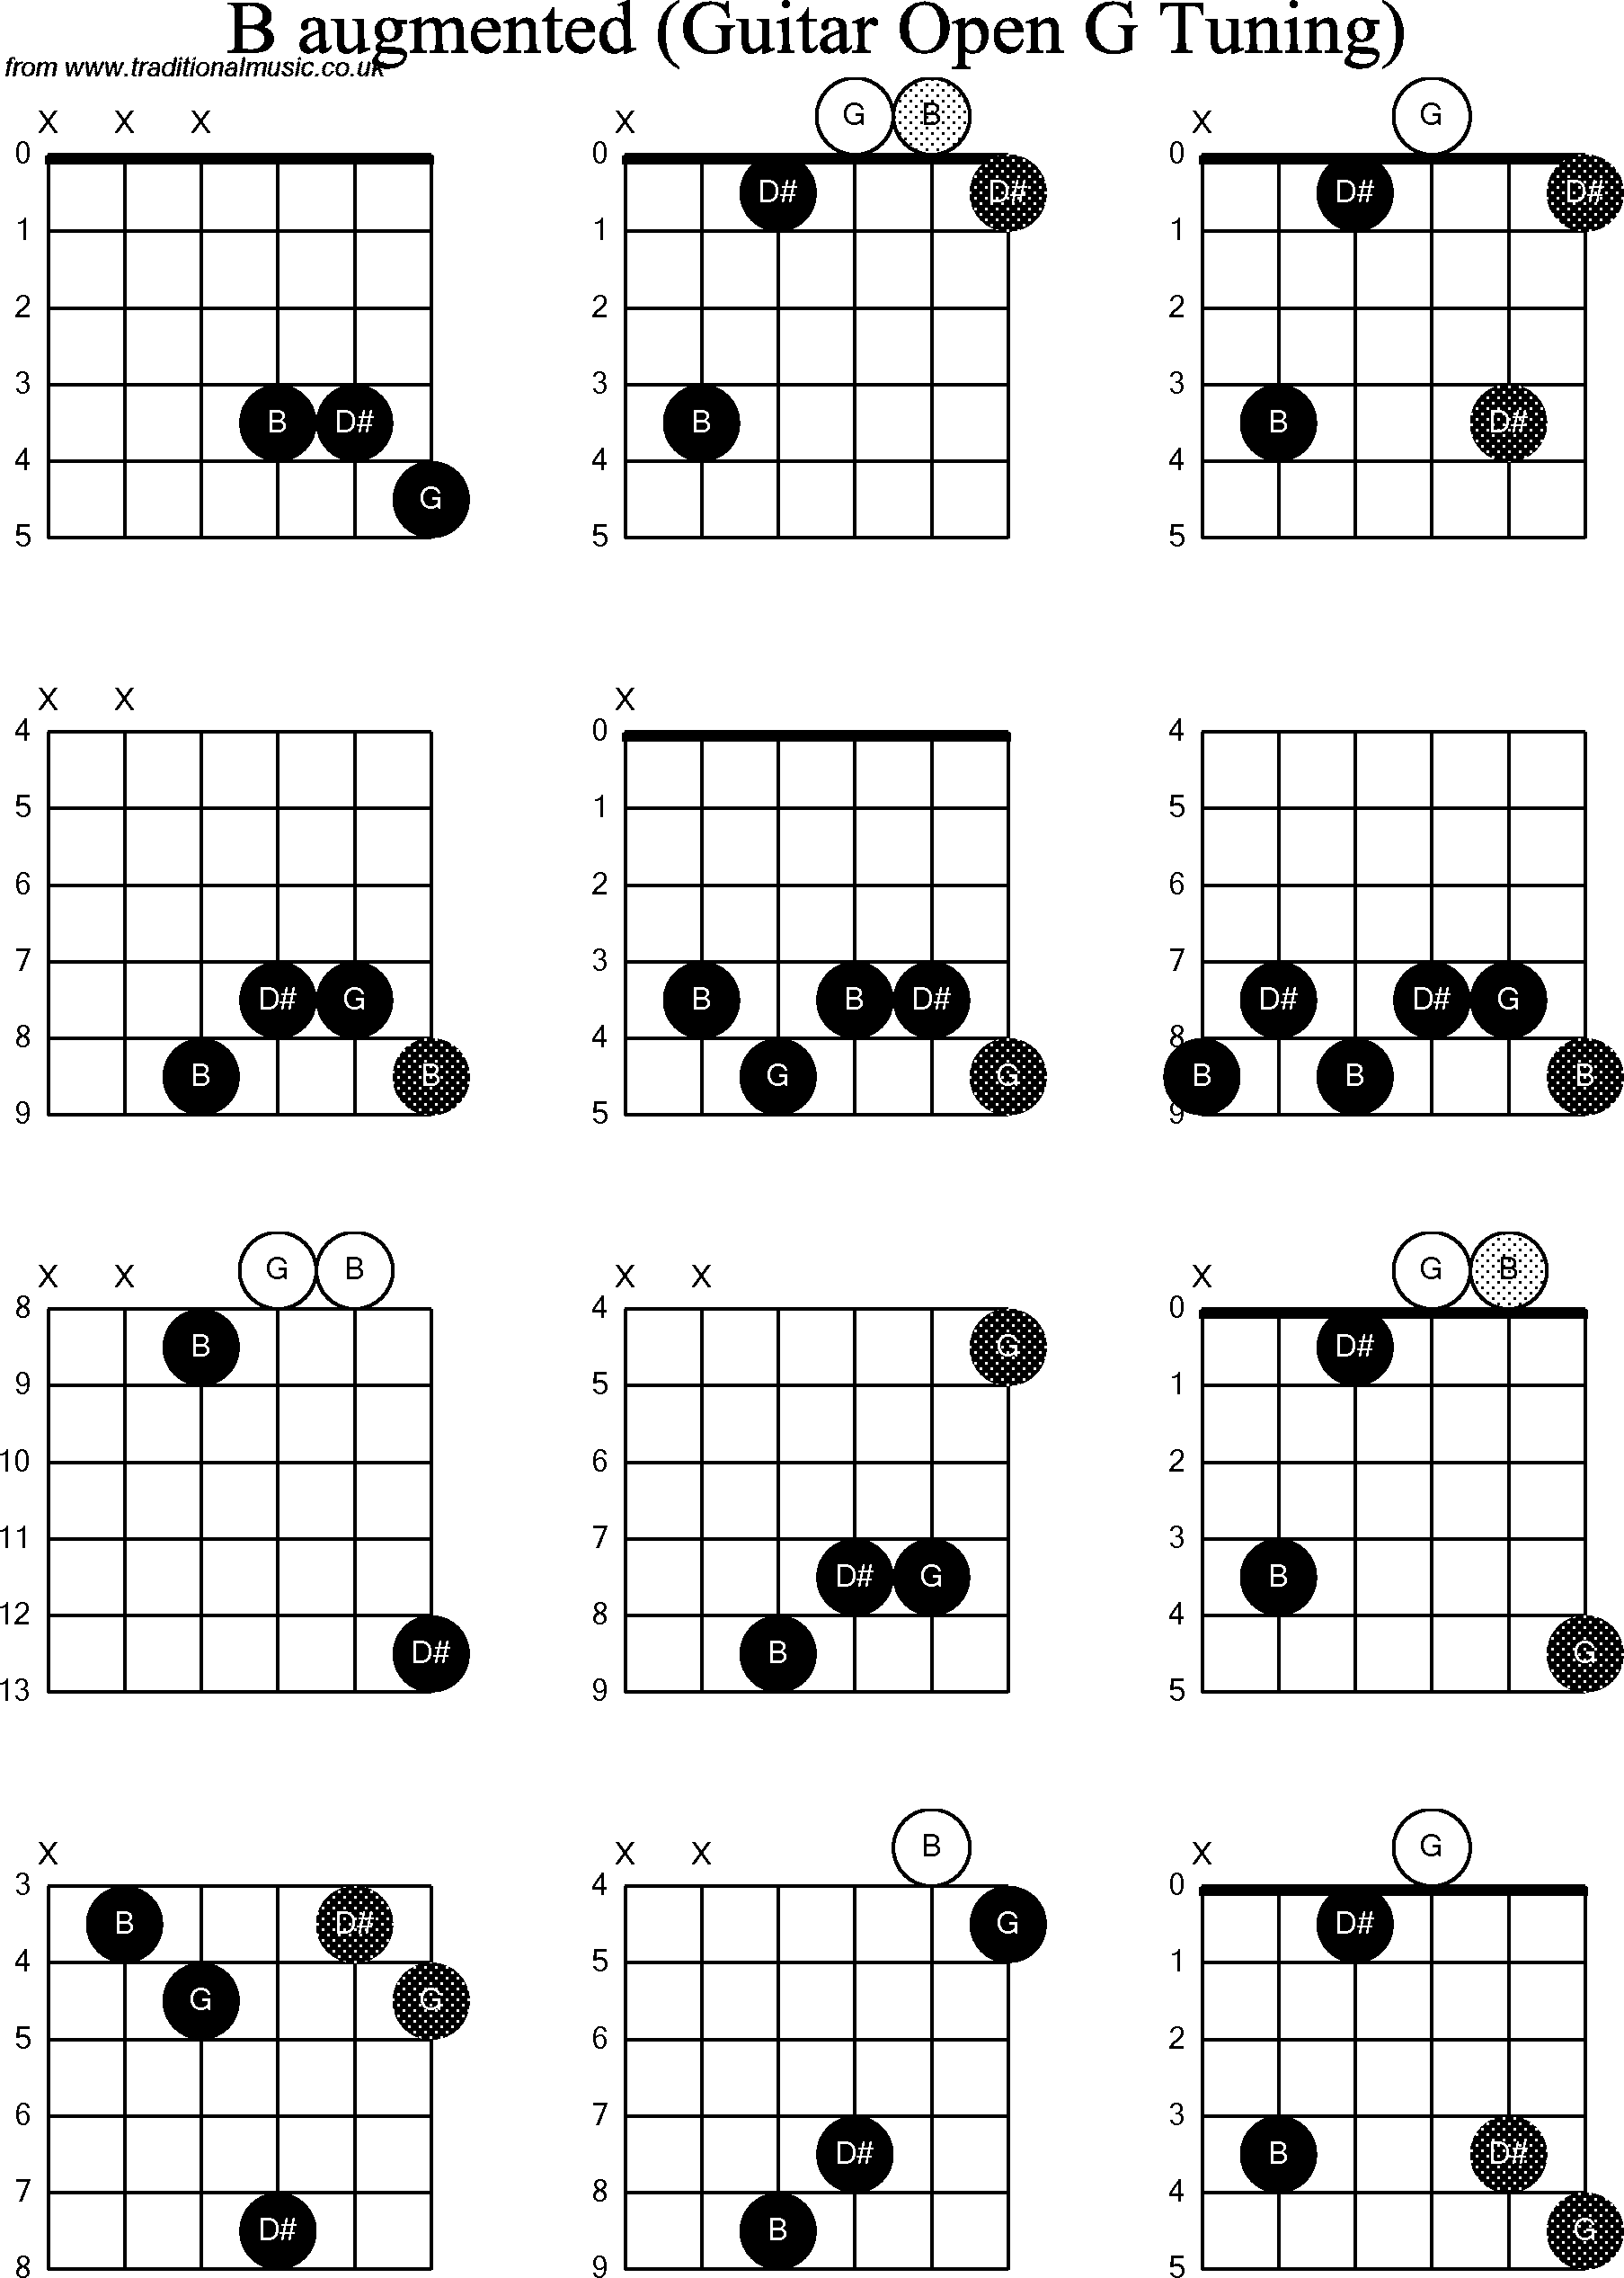 Chord Diagrams For Dobro B Augmented